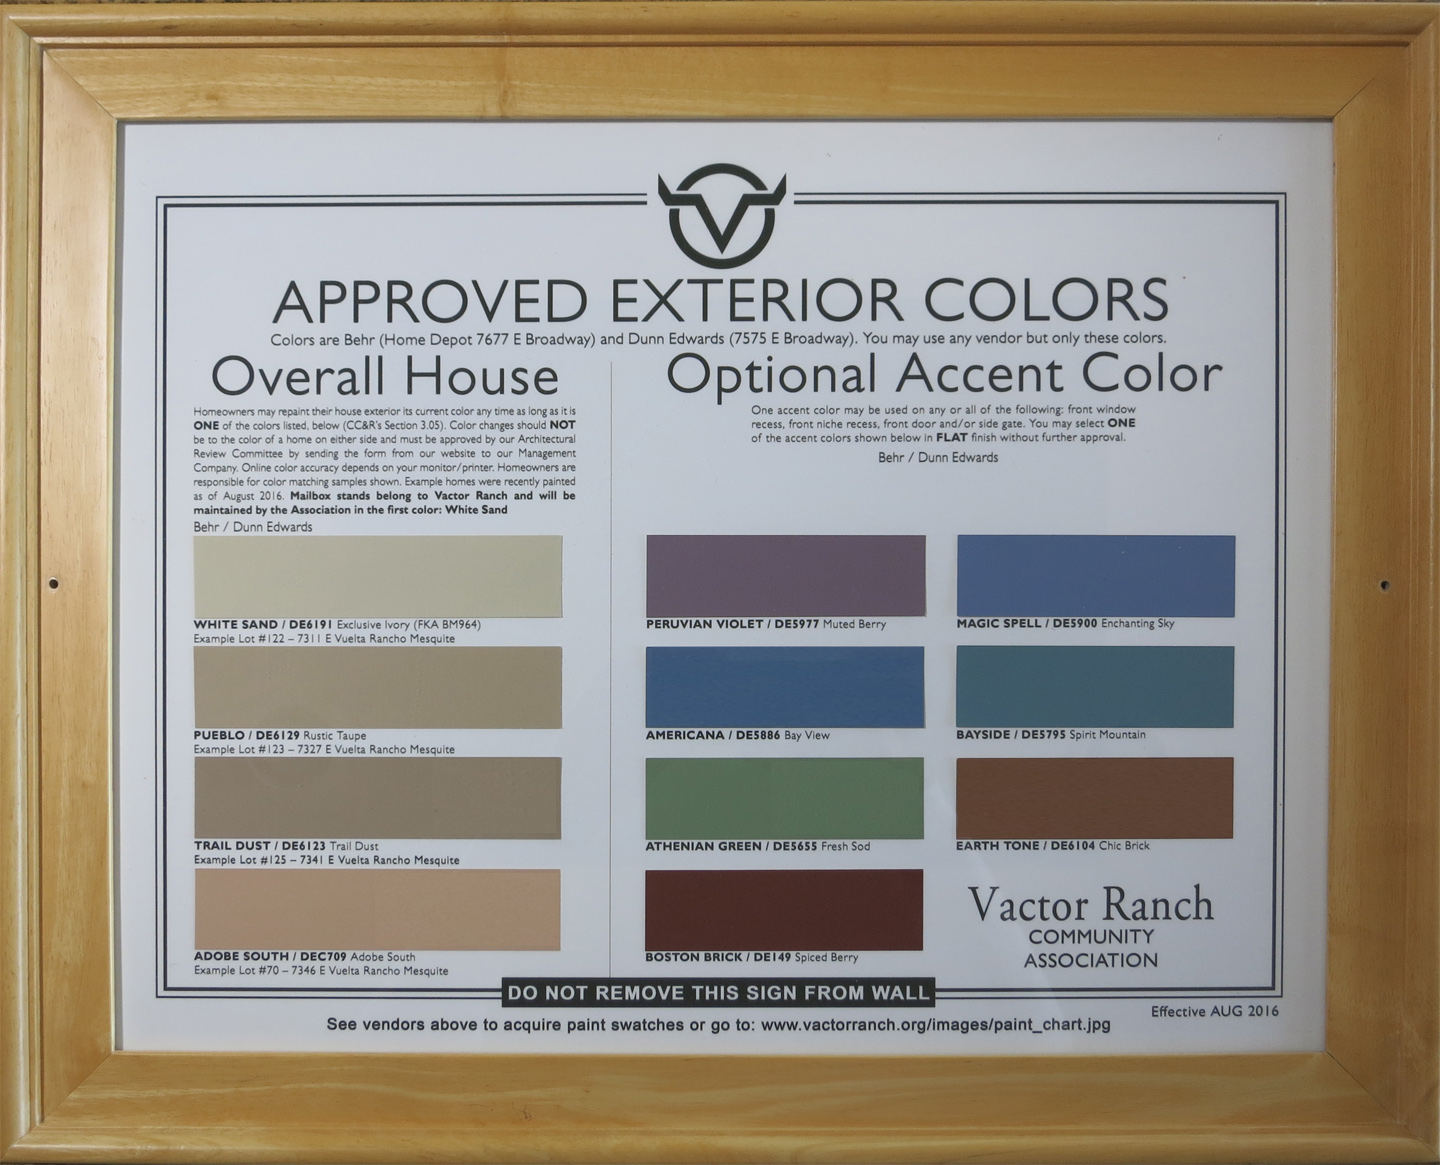 Dunn edwards exterior paint color charts for Dunn edwards exterior paint colors chart